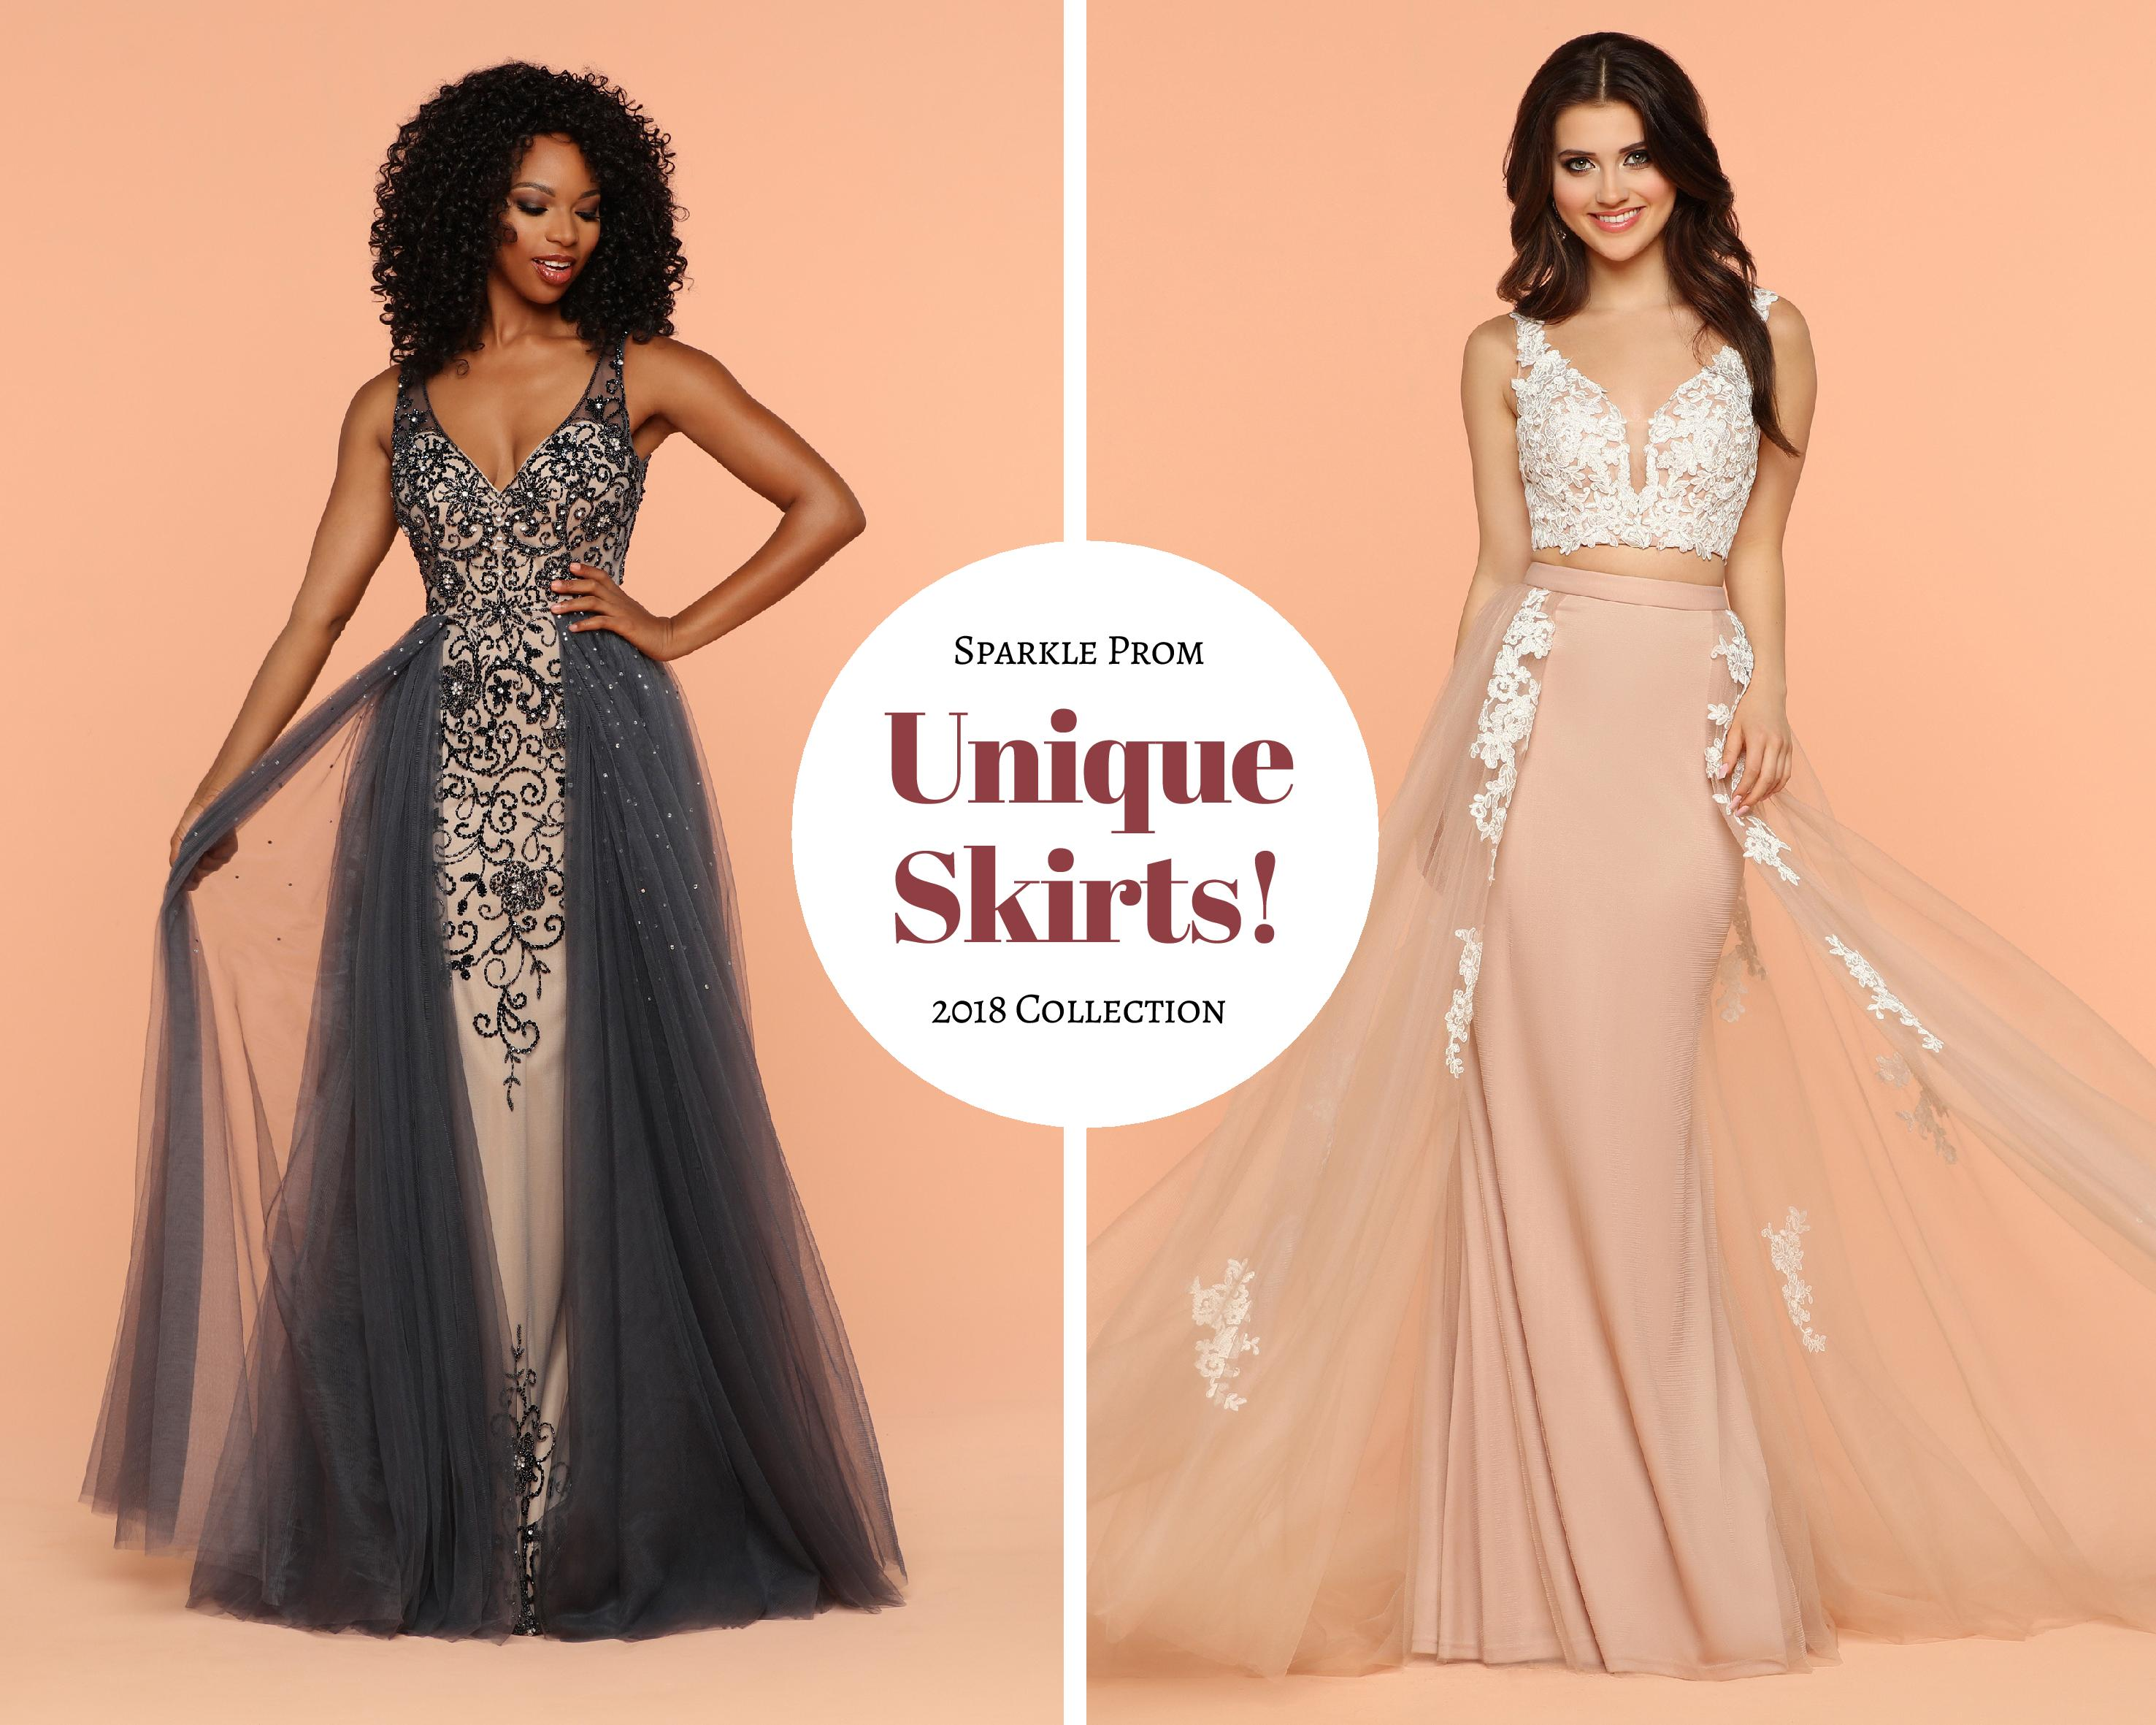 New 2018 Sparkle Prom Collection! Undeniably Unique: Prom Gowns with Distinctive Skirts